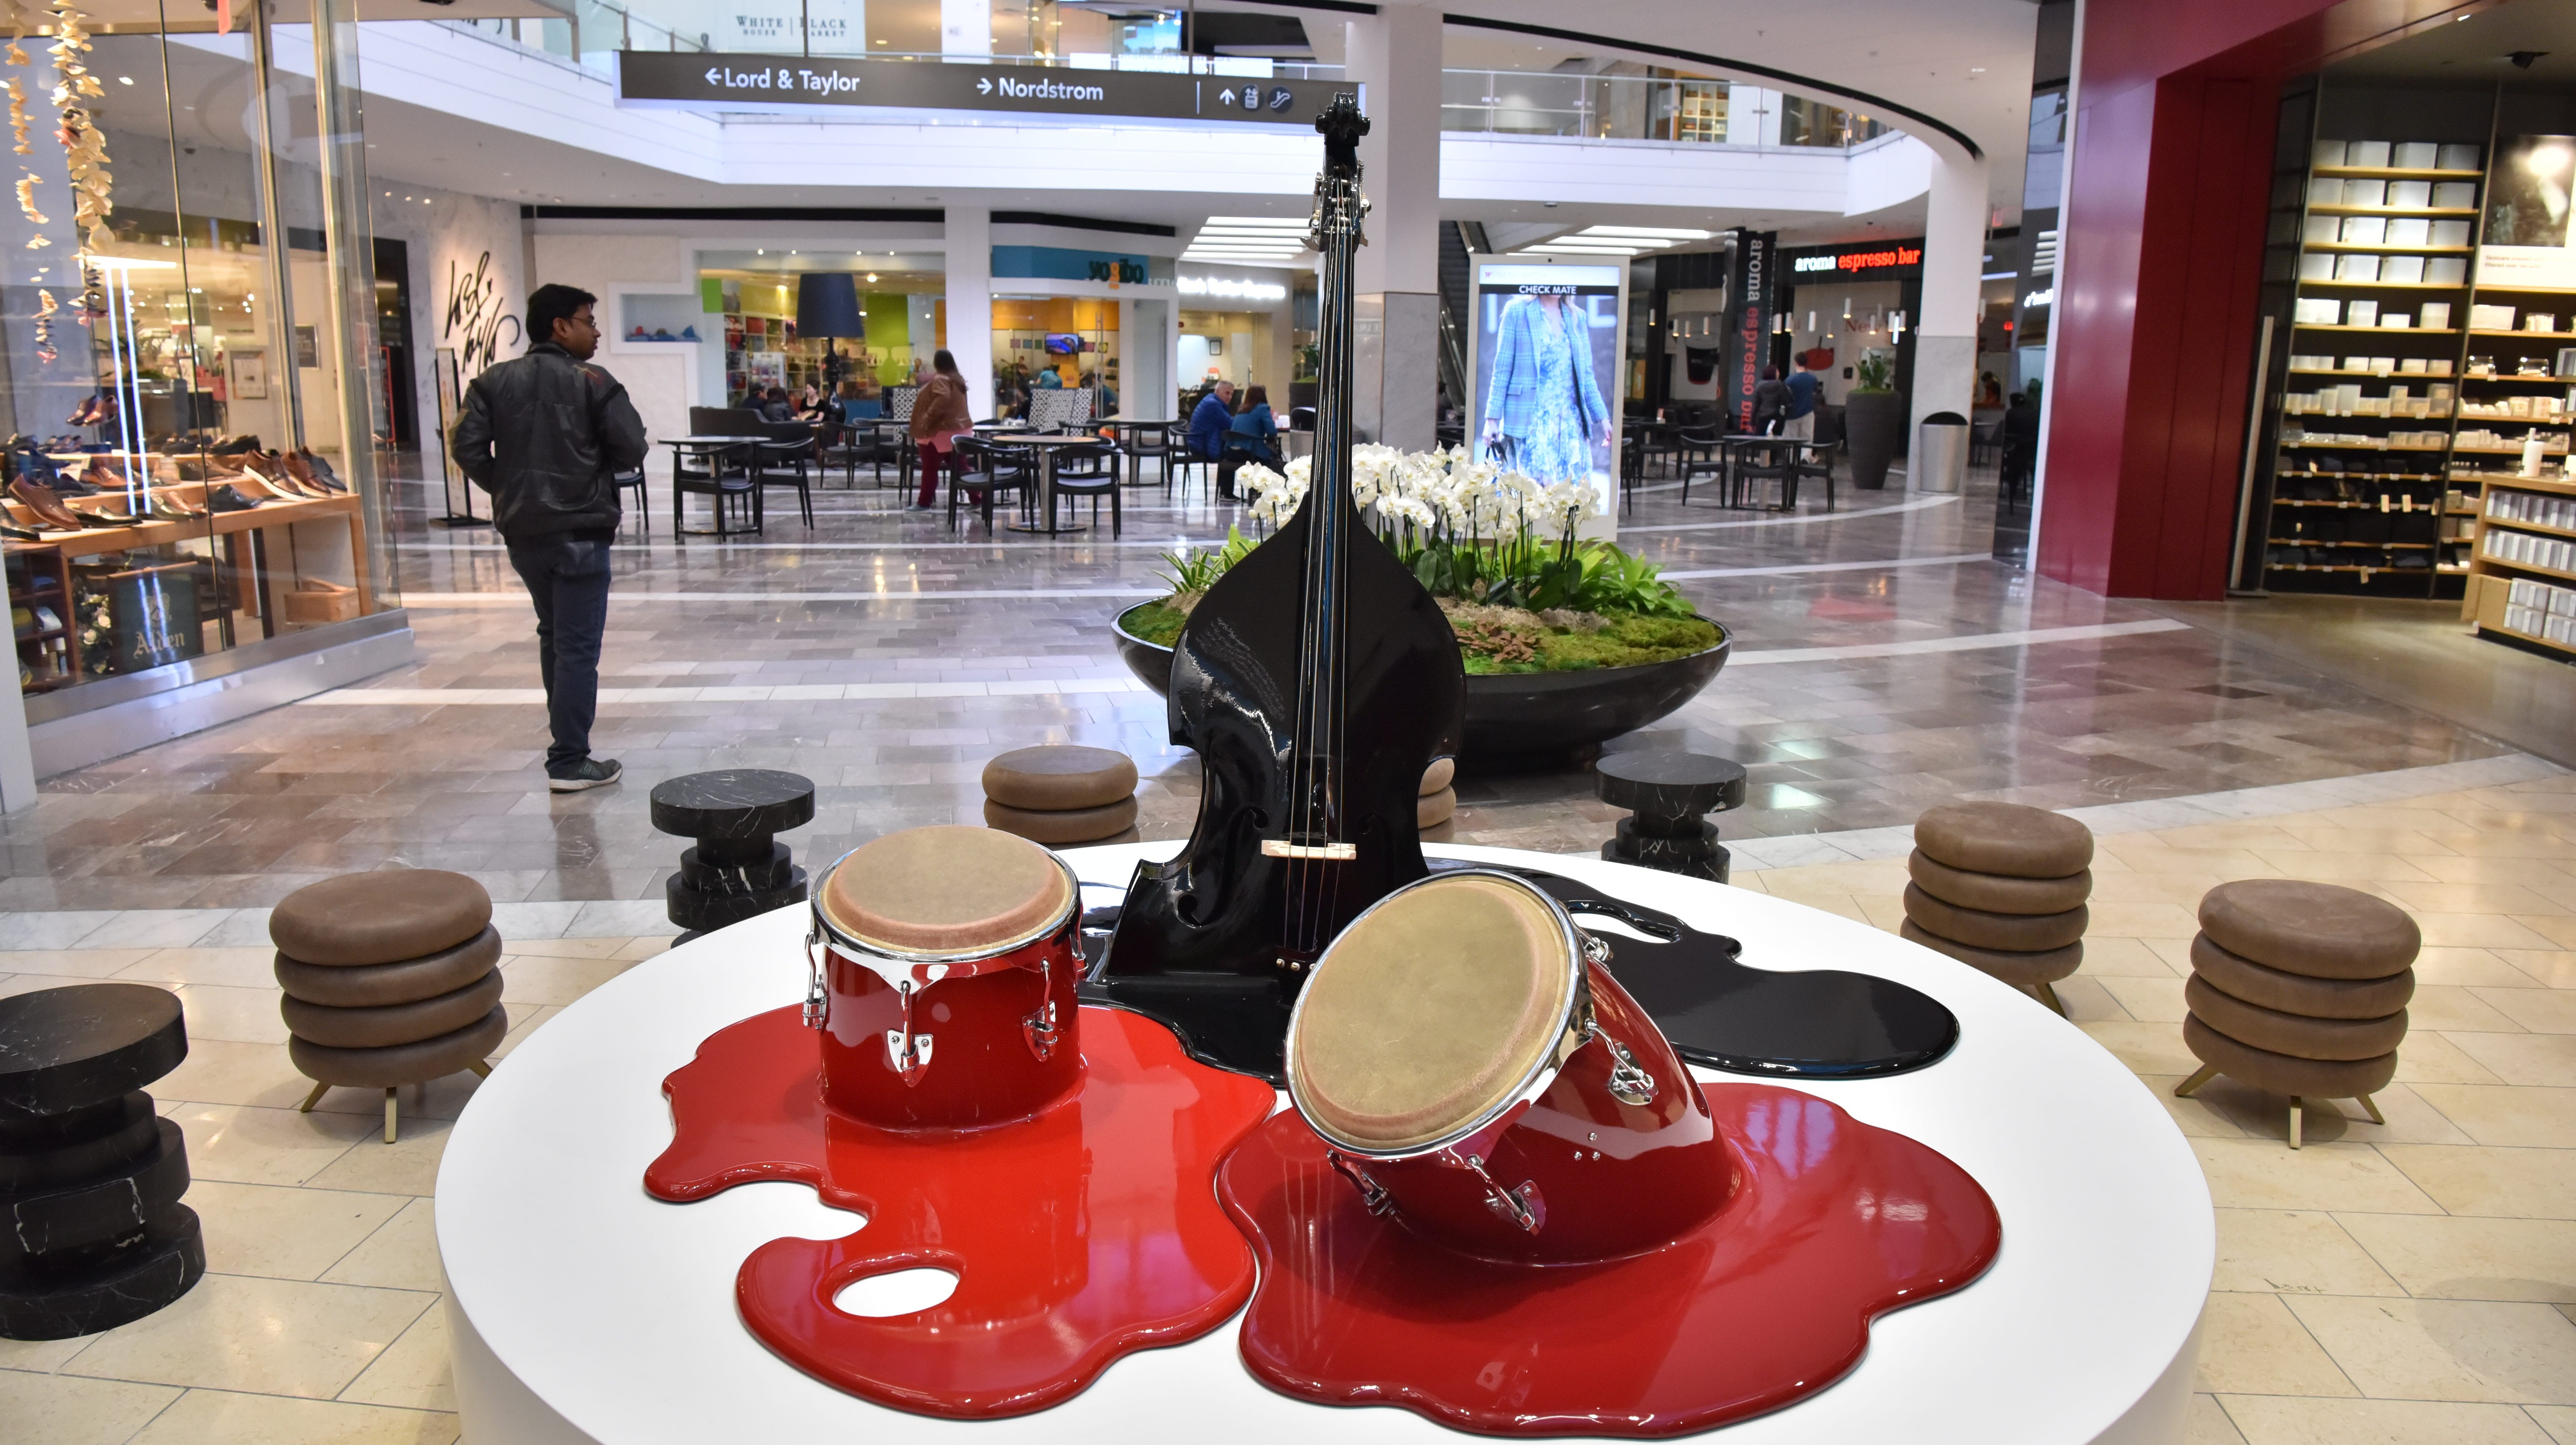 Puzzled by giant nail, melting drums at Garden State Plaza? Here's what's going on